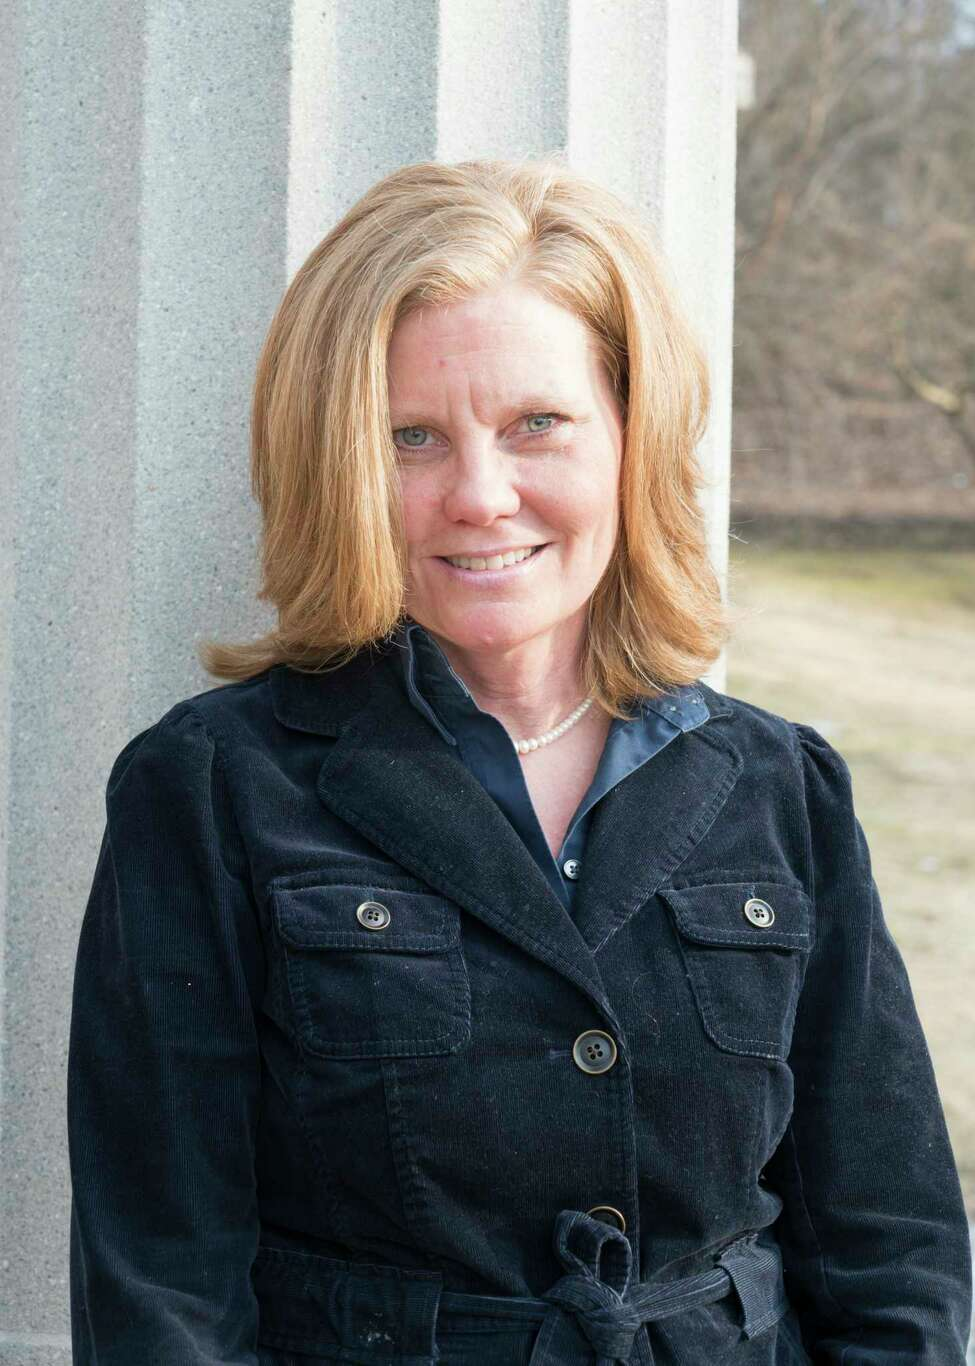 Patricia Morrison announced Saturday, April 13, 2019, that she is running for the Saratoga Springs finance commissioner's seat currently held by Michelle Madigan. (Provided photo)